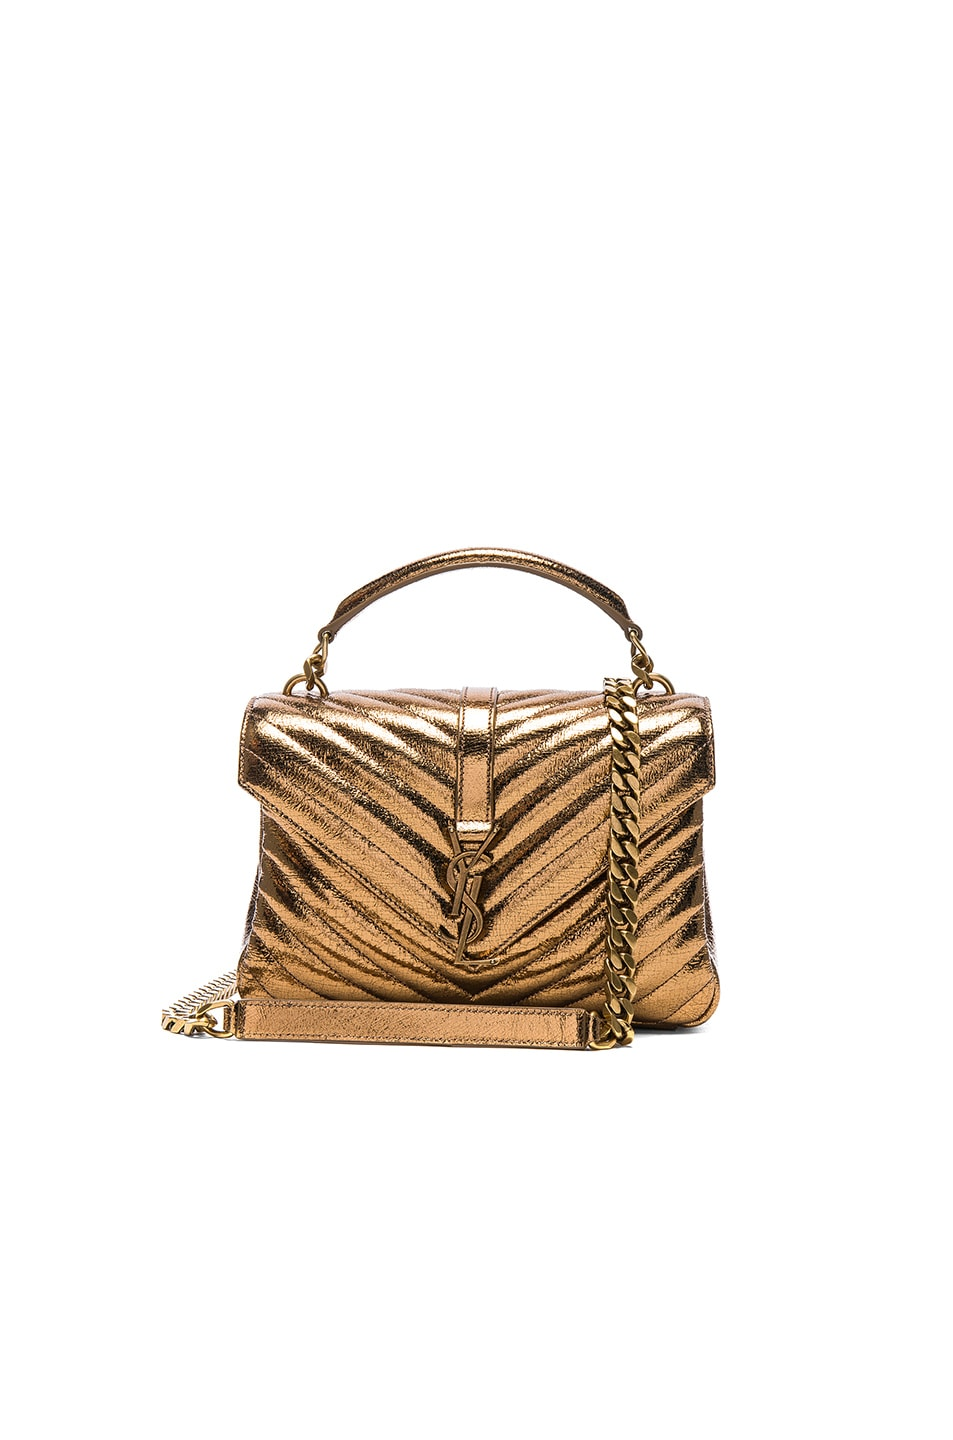 Image 1 of Saint Laurent Medium Metallic Monogramme College Bag in Bronze